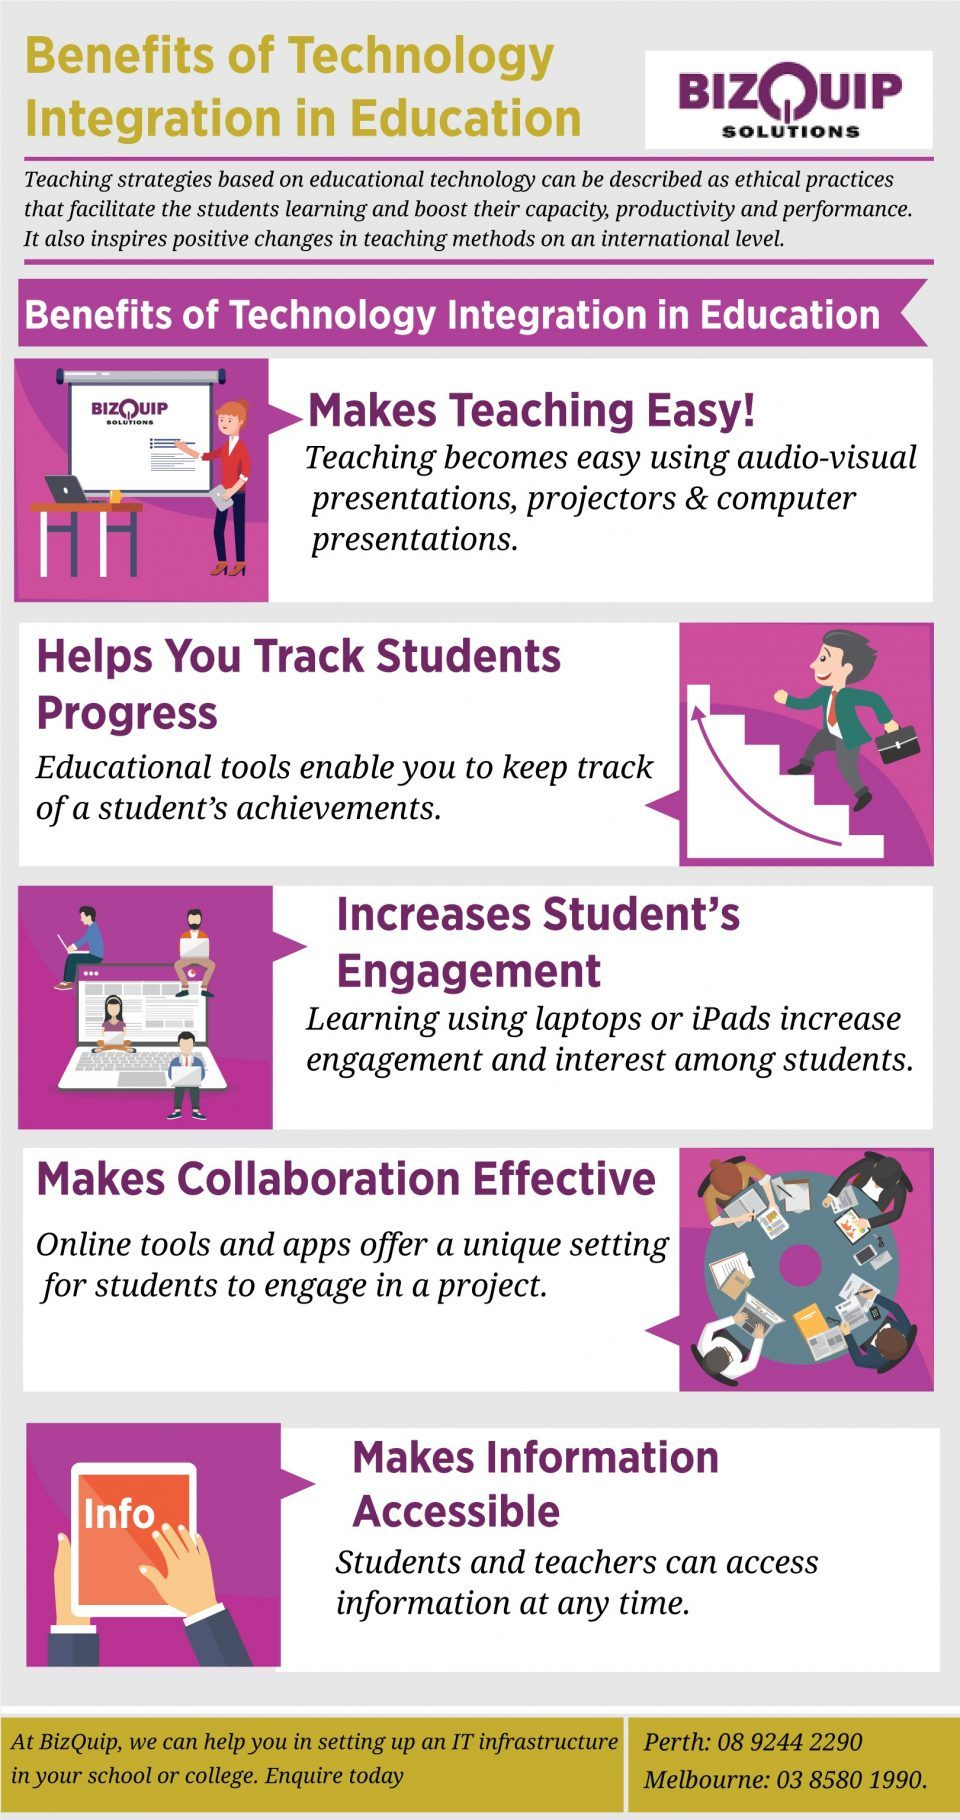 Benefits Of Technology Integration In Education Infographic